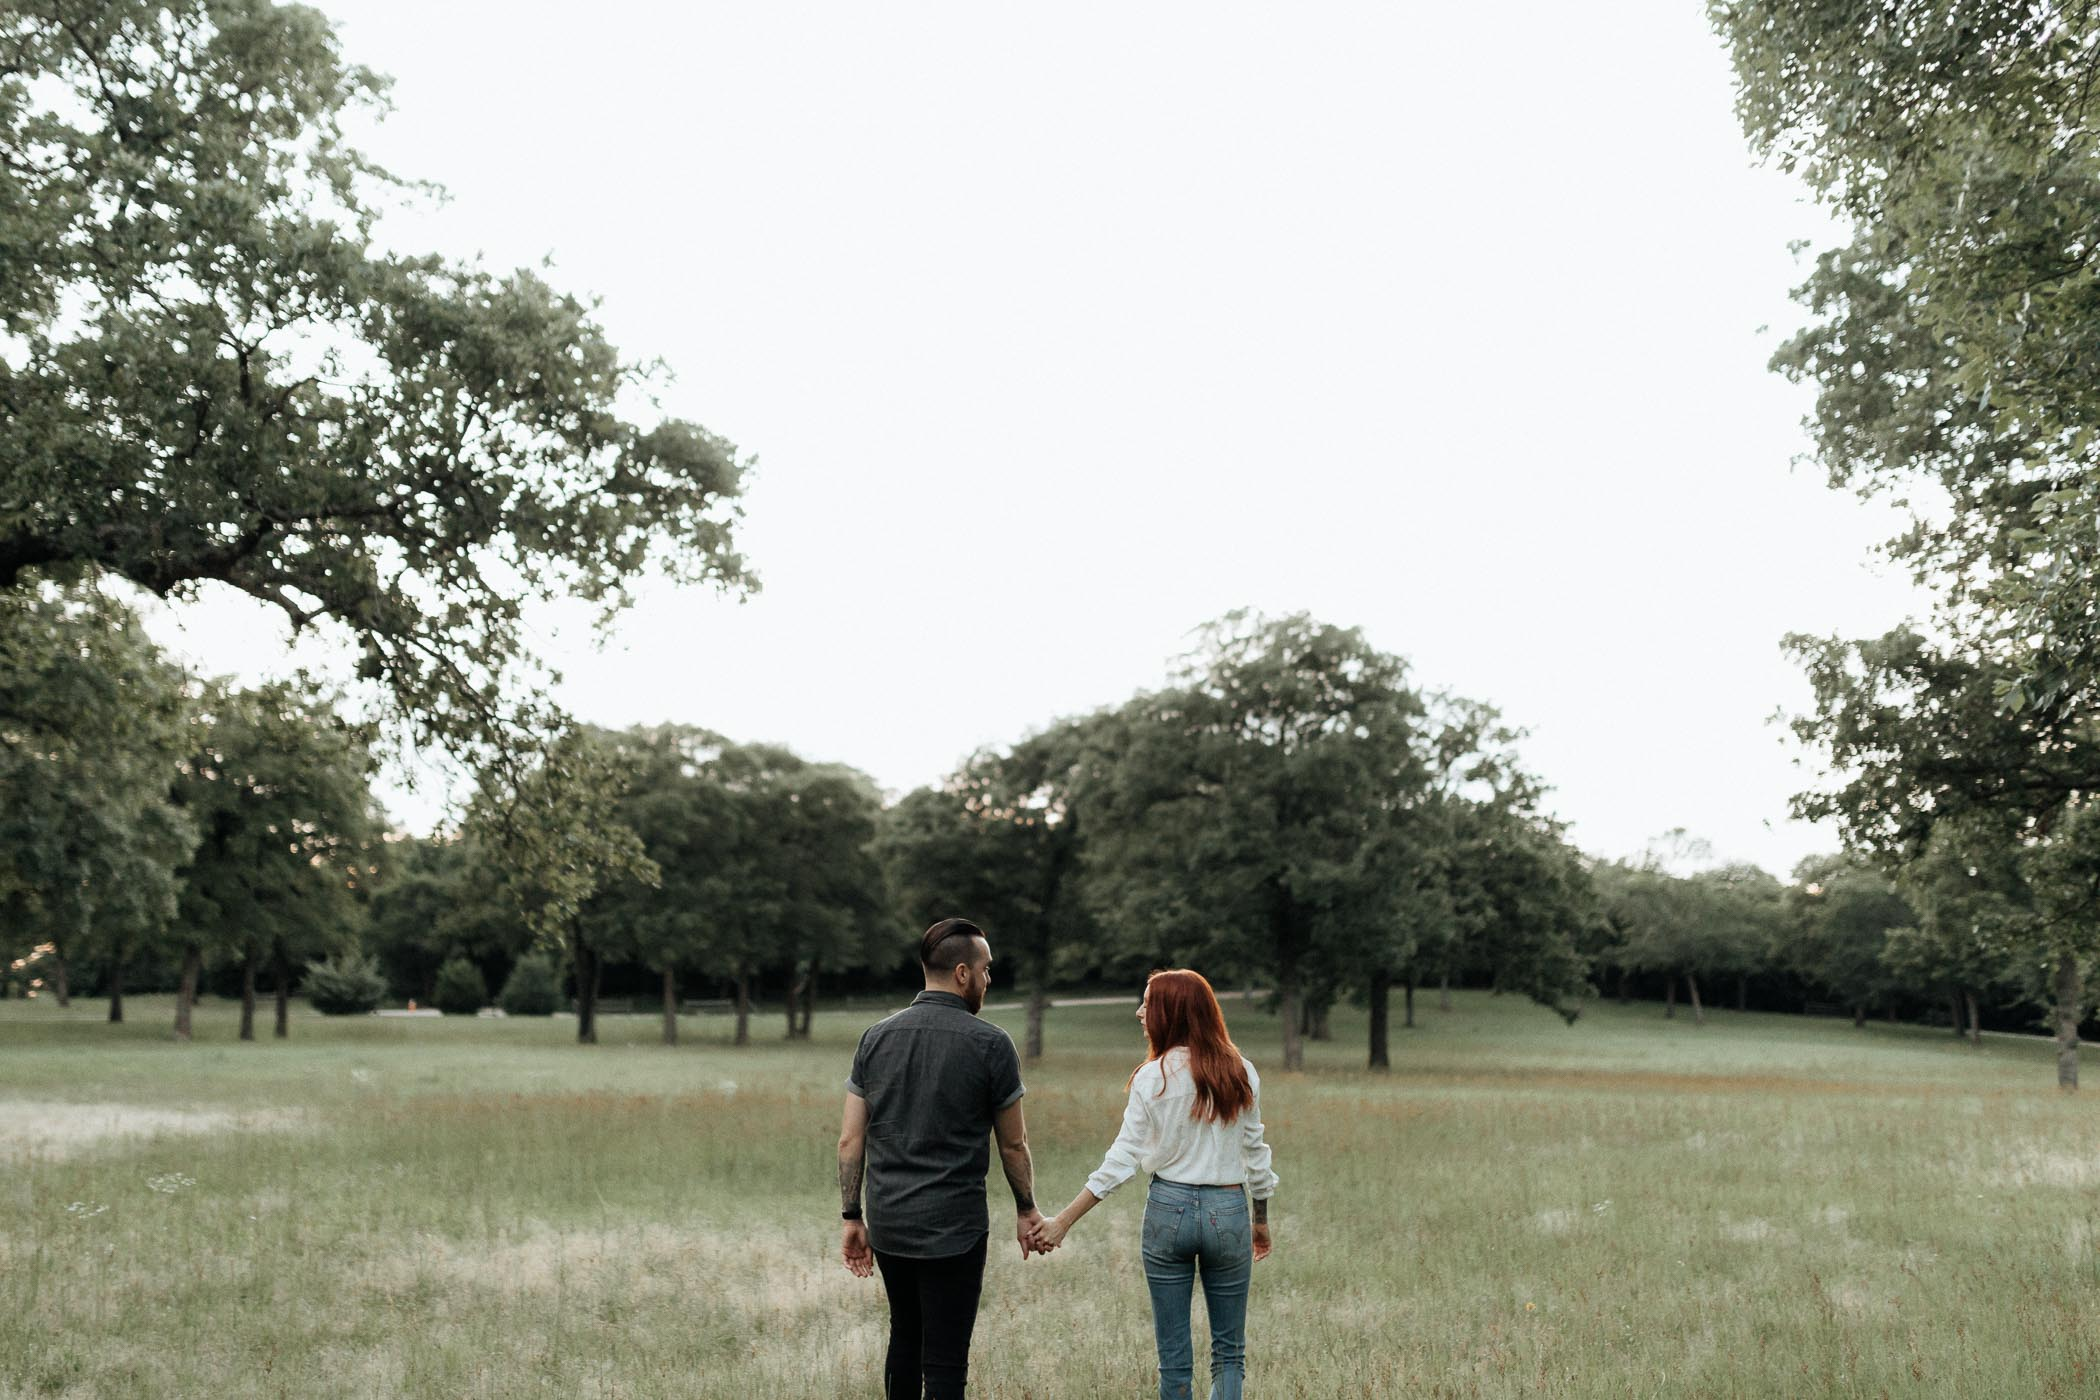 Couple walking in field at The grove in Aubrey texas at sunset